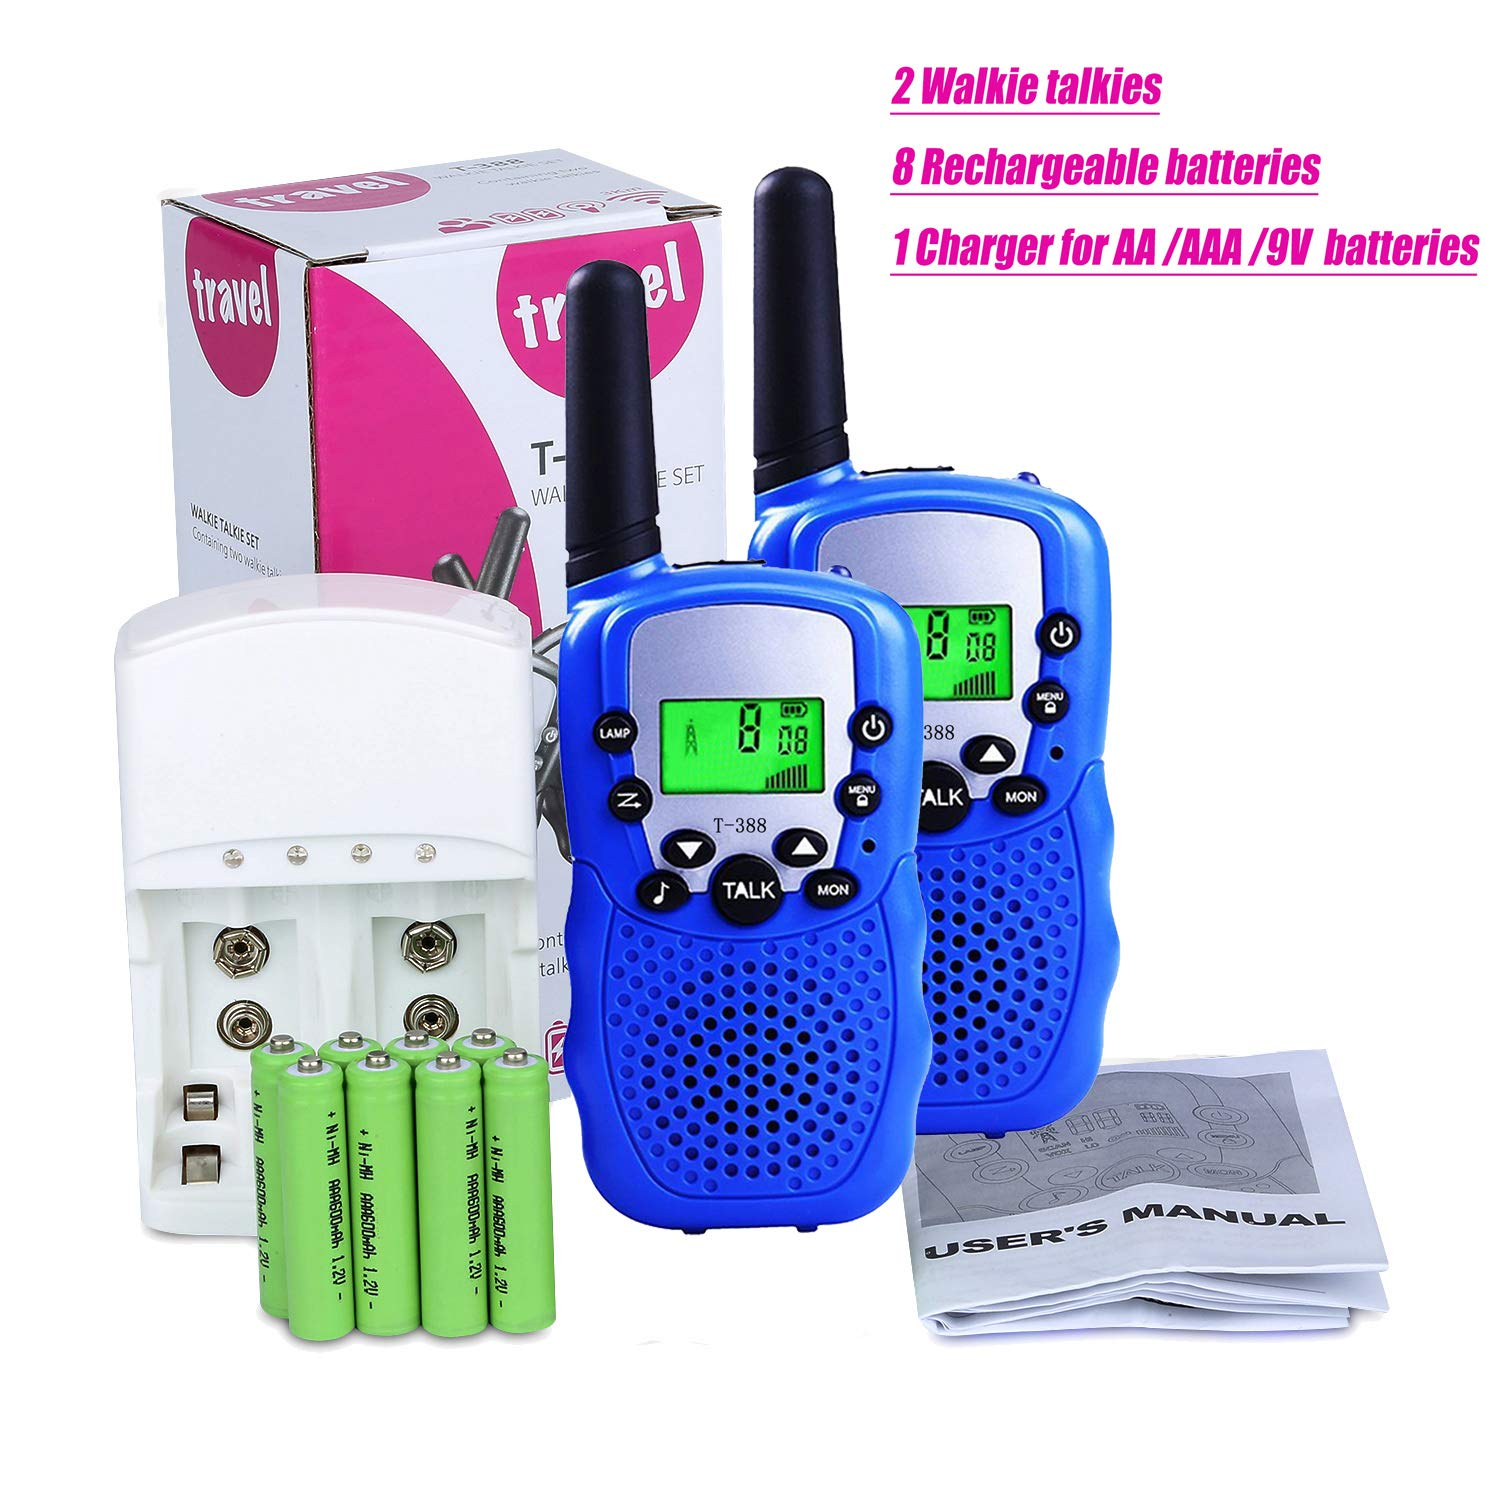 Walkie Talkies for Kids, 22 Channel 3 Mile Long Range Rechargeable FRS Two Way Radio Toys with Flashlight and LCD Screen for Boys&Girls.(Pack of 2, 8pcs Rechargeable Batteries , a Charger Included) by ZWTOPWZ (Image #7)